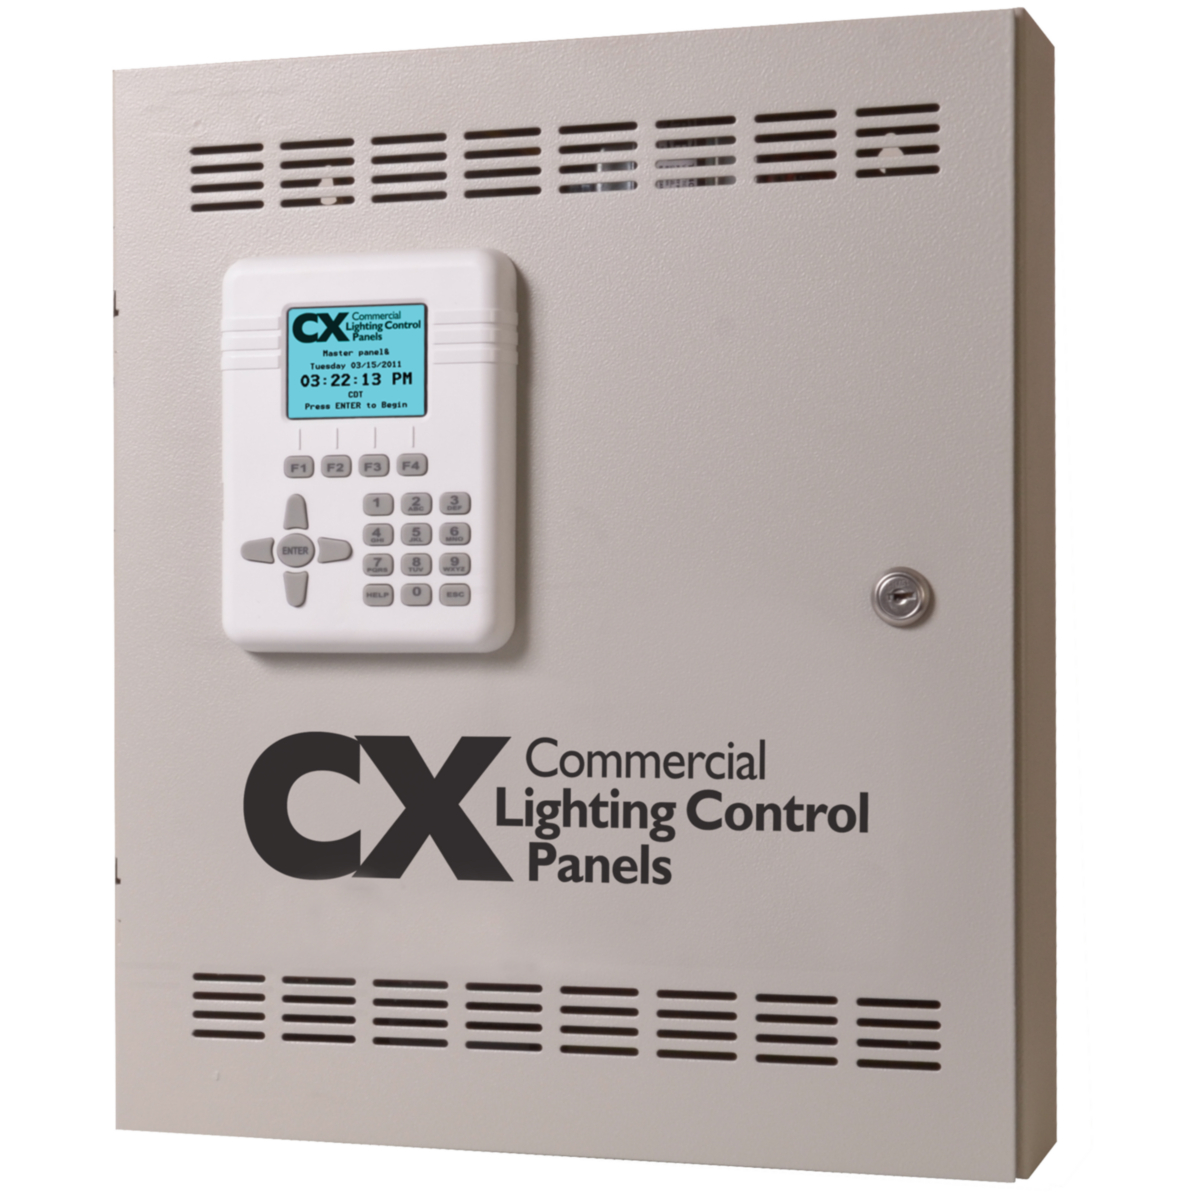 ... Lighting Control Panels System. HCS_CX04 panel_JMK1192-3_PRODIMAGE